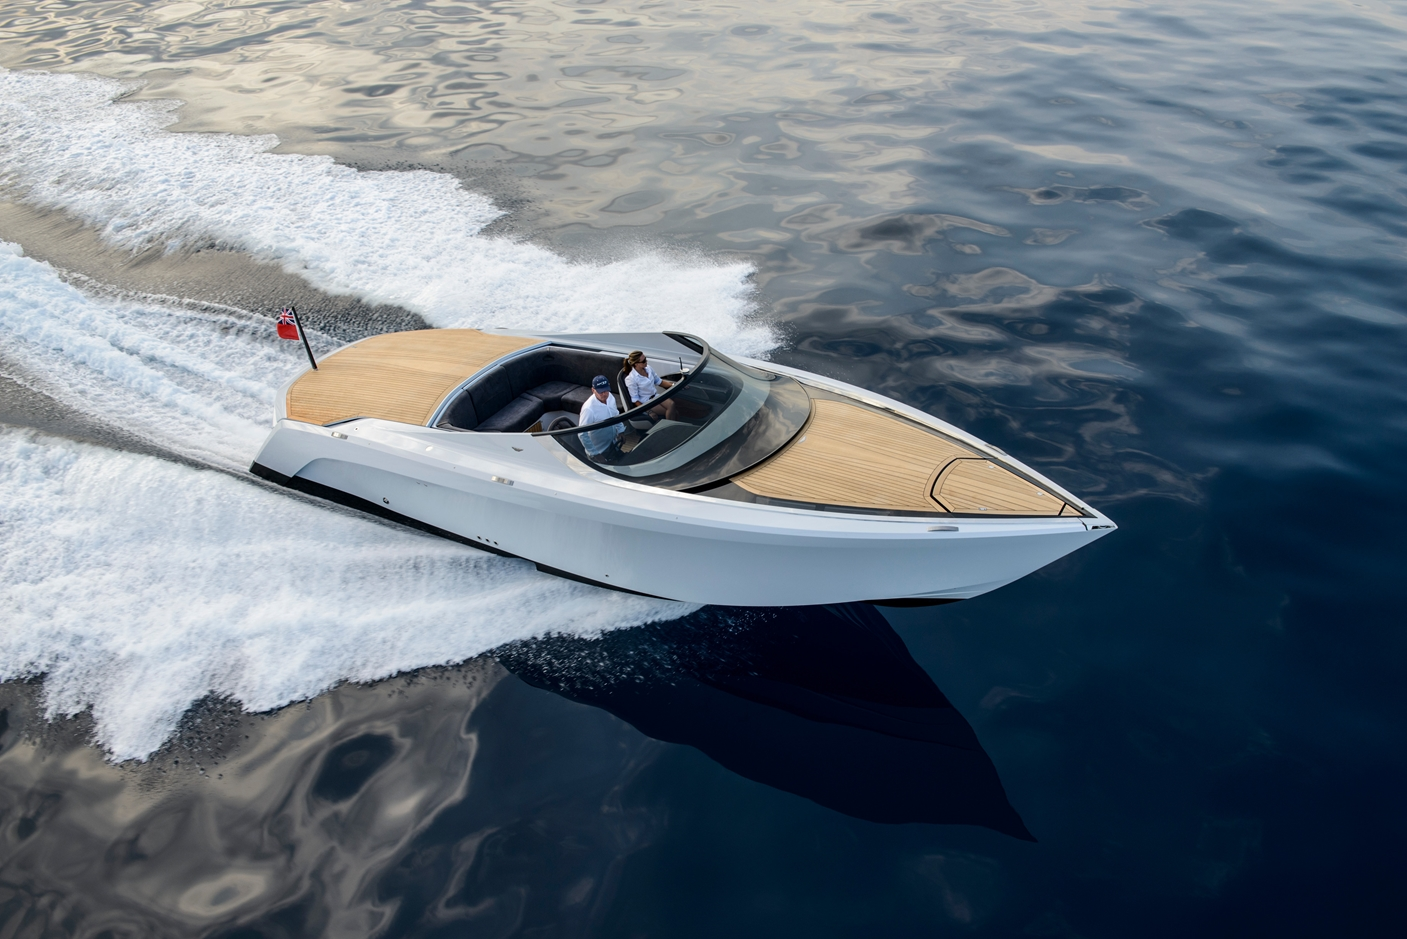 All New 11 Meter Aston Martin Yacht Is Launched In The Middle East